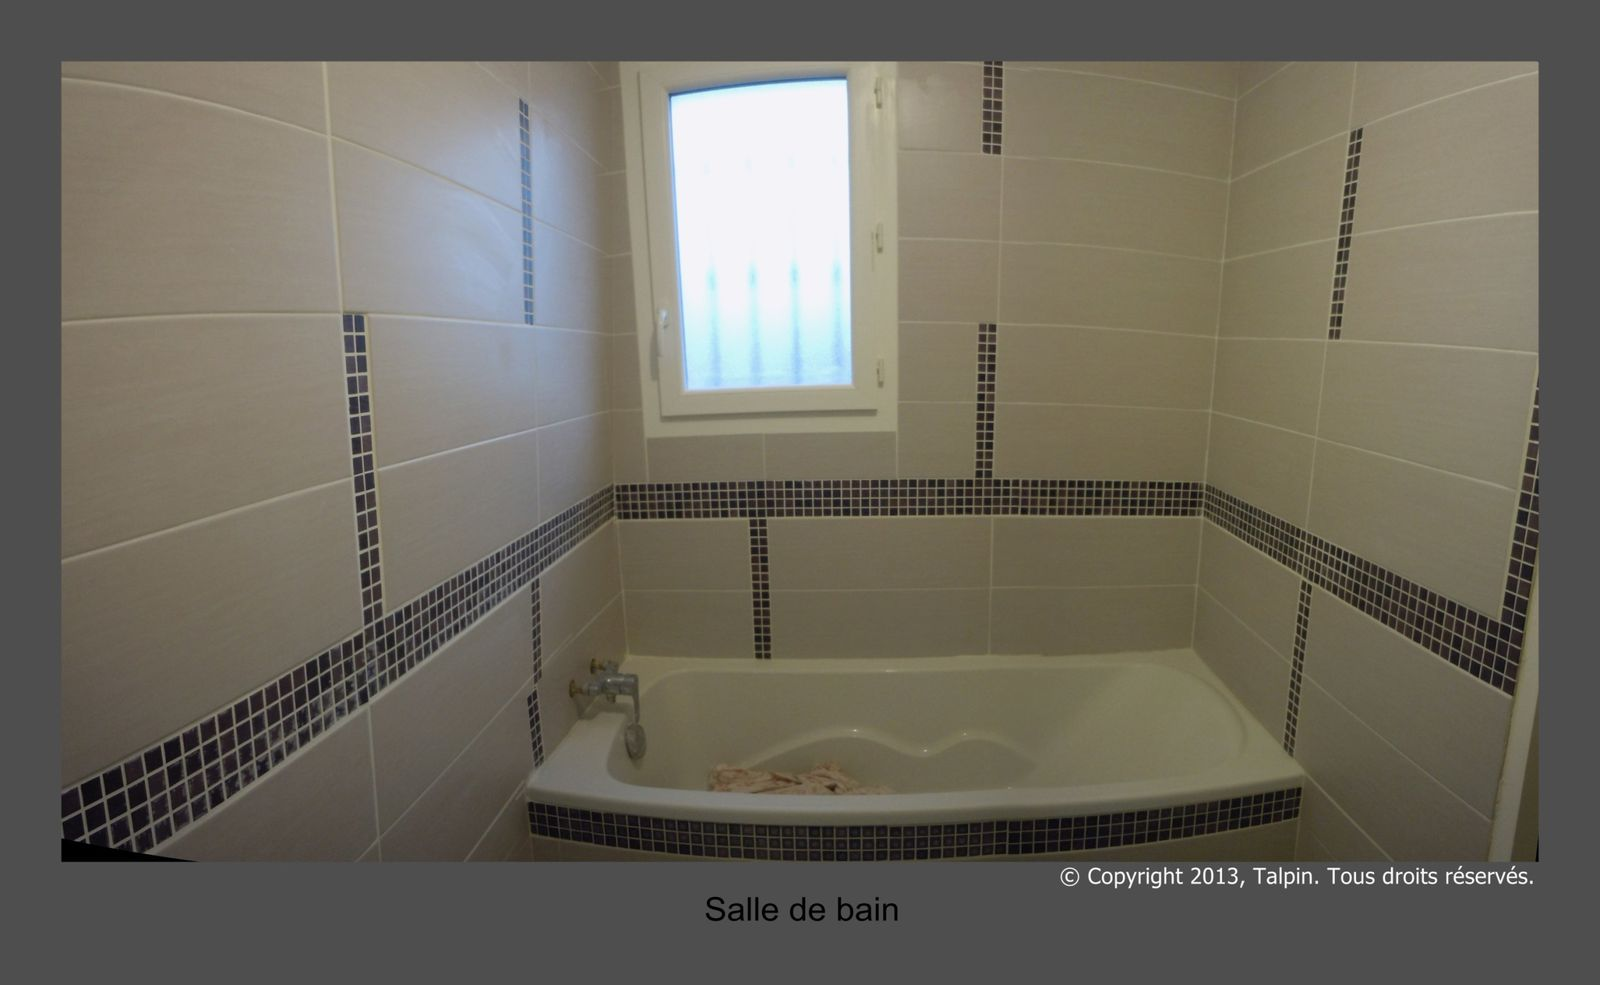 Awesome salle de bain tunisie faience photos amazing for Faience salle de bain porcelanosa